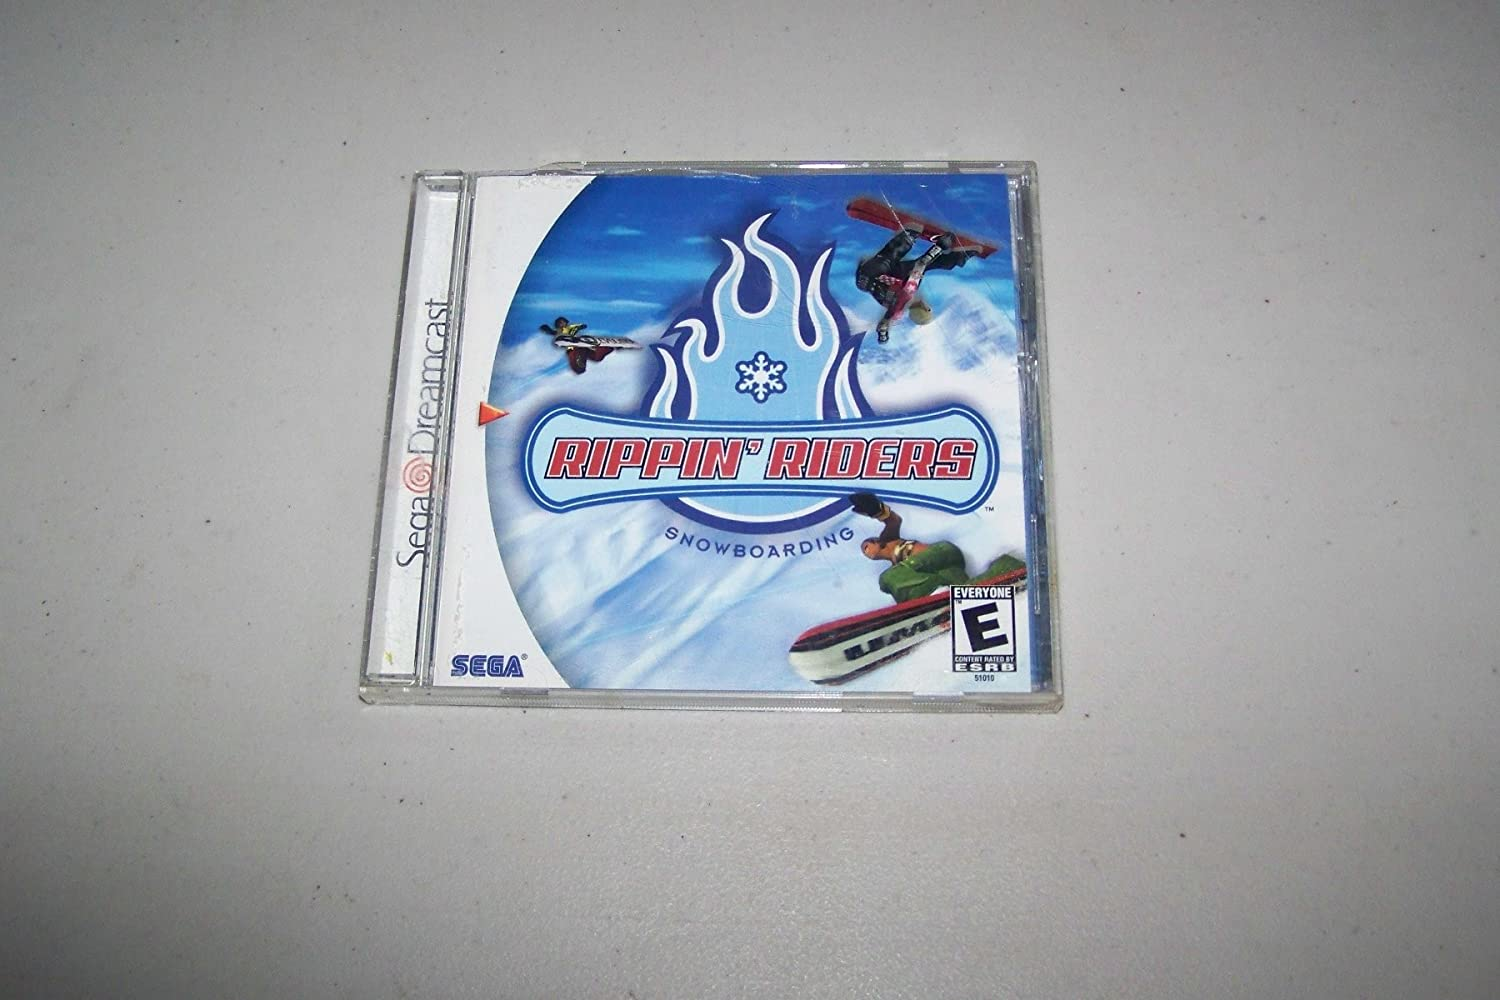 Rippin' Riders: Video Games